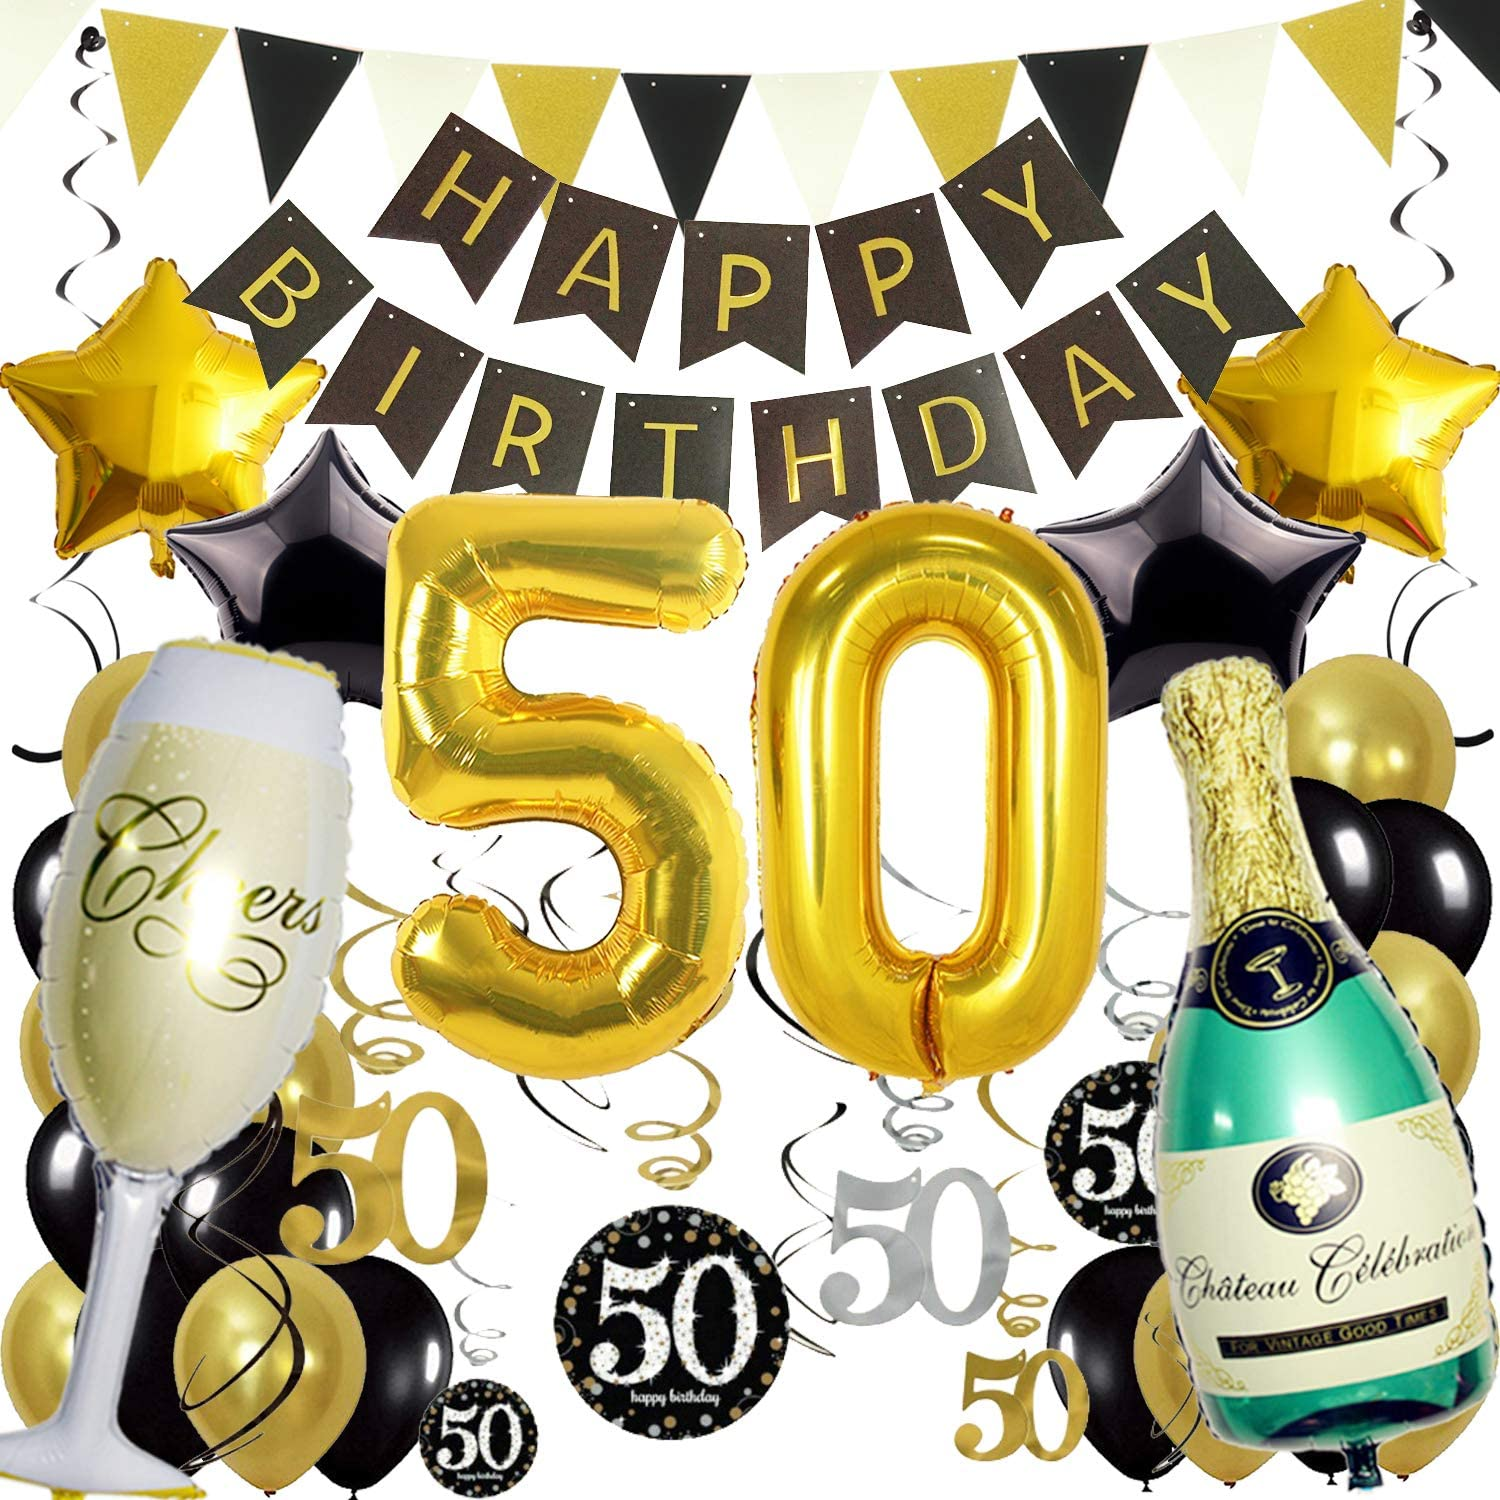 ZERODECO Birthday Decorations, Black and Gold Happy Birthday Banner 50th Gold Number Balloons Star Bottle Champagne Foil Balloons Triangular Garland Hanging Swirls for 50th Years Old Party Supplies